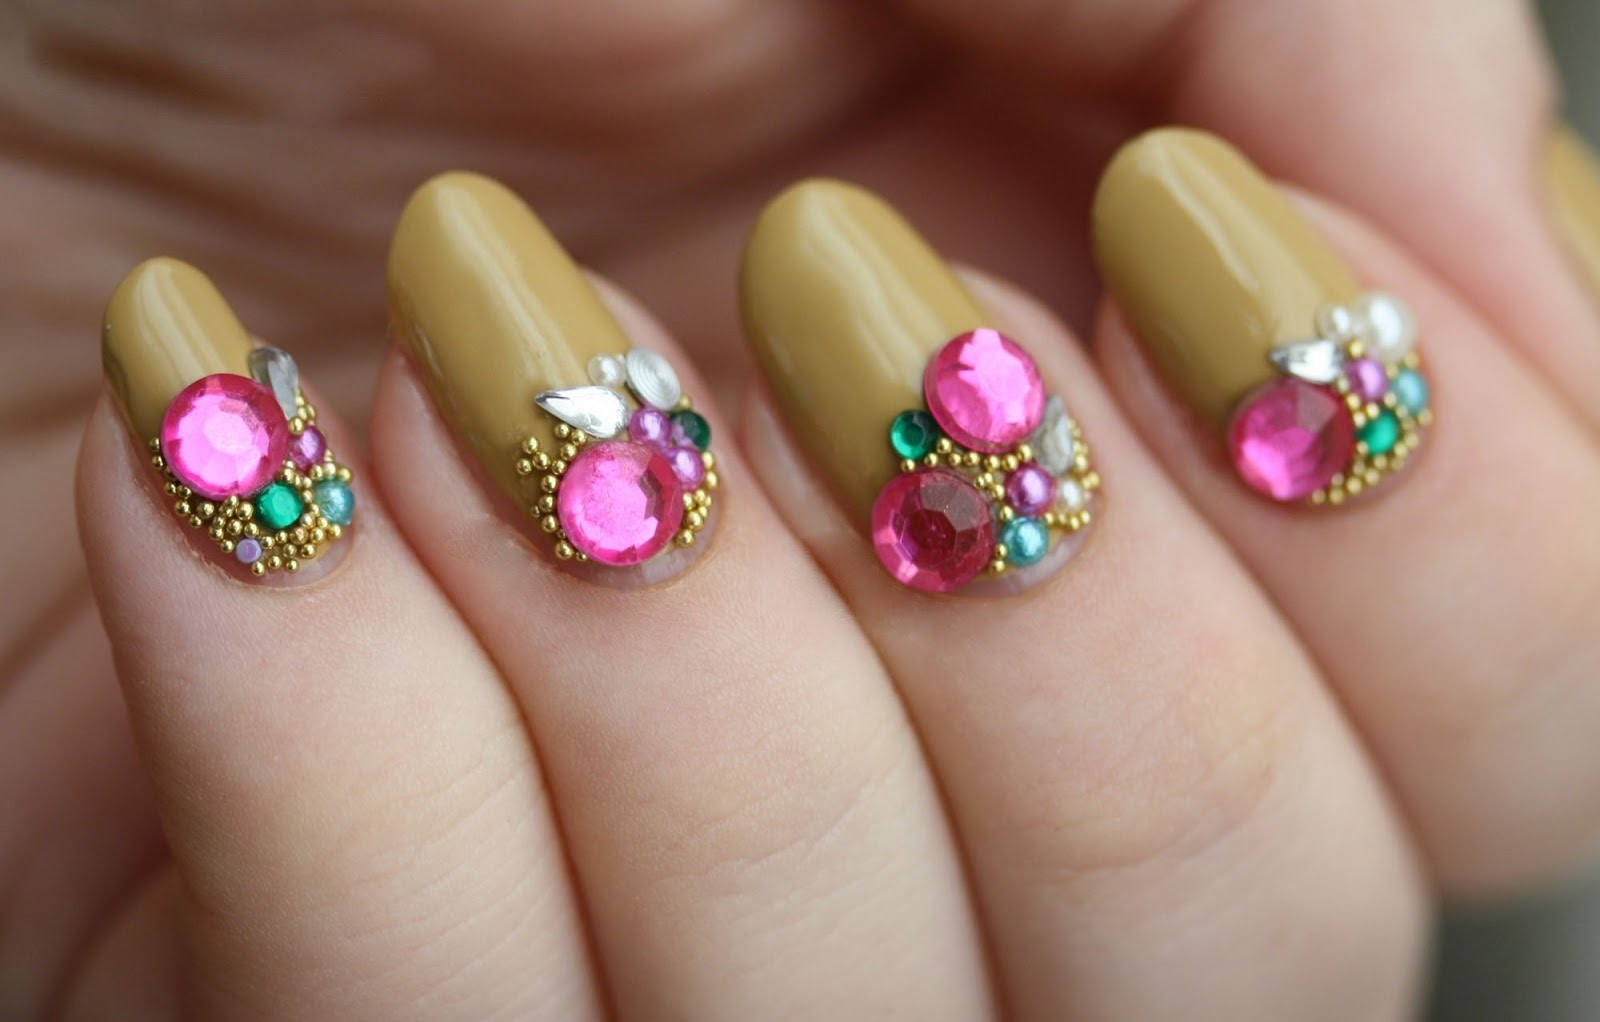 Nail Art Ideas » Nail Art Gems Designs - Pictures of Nail Art Design ...